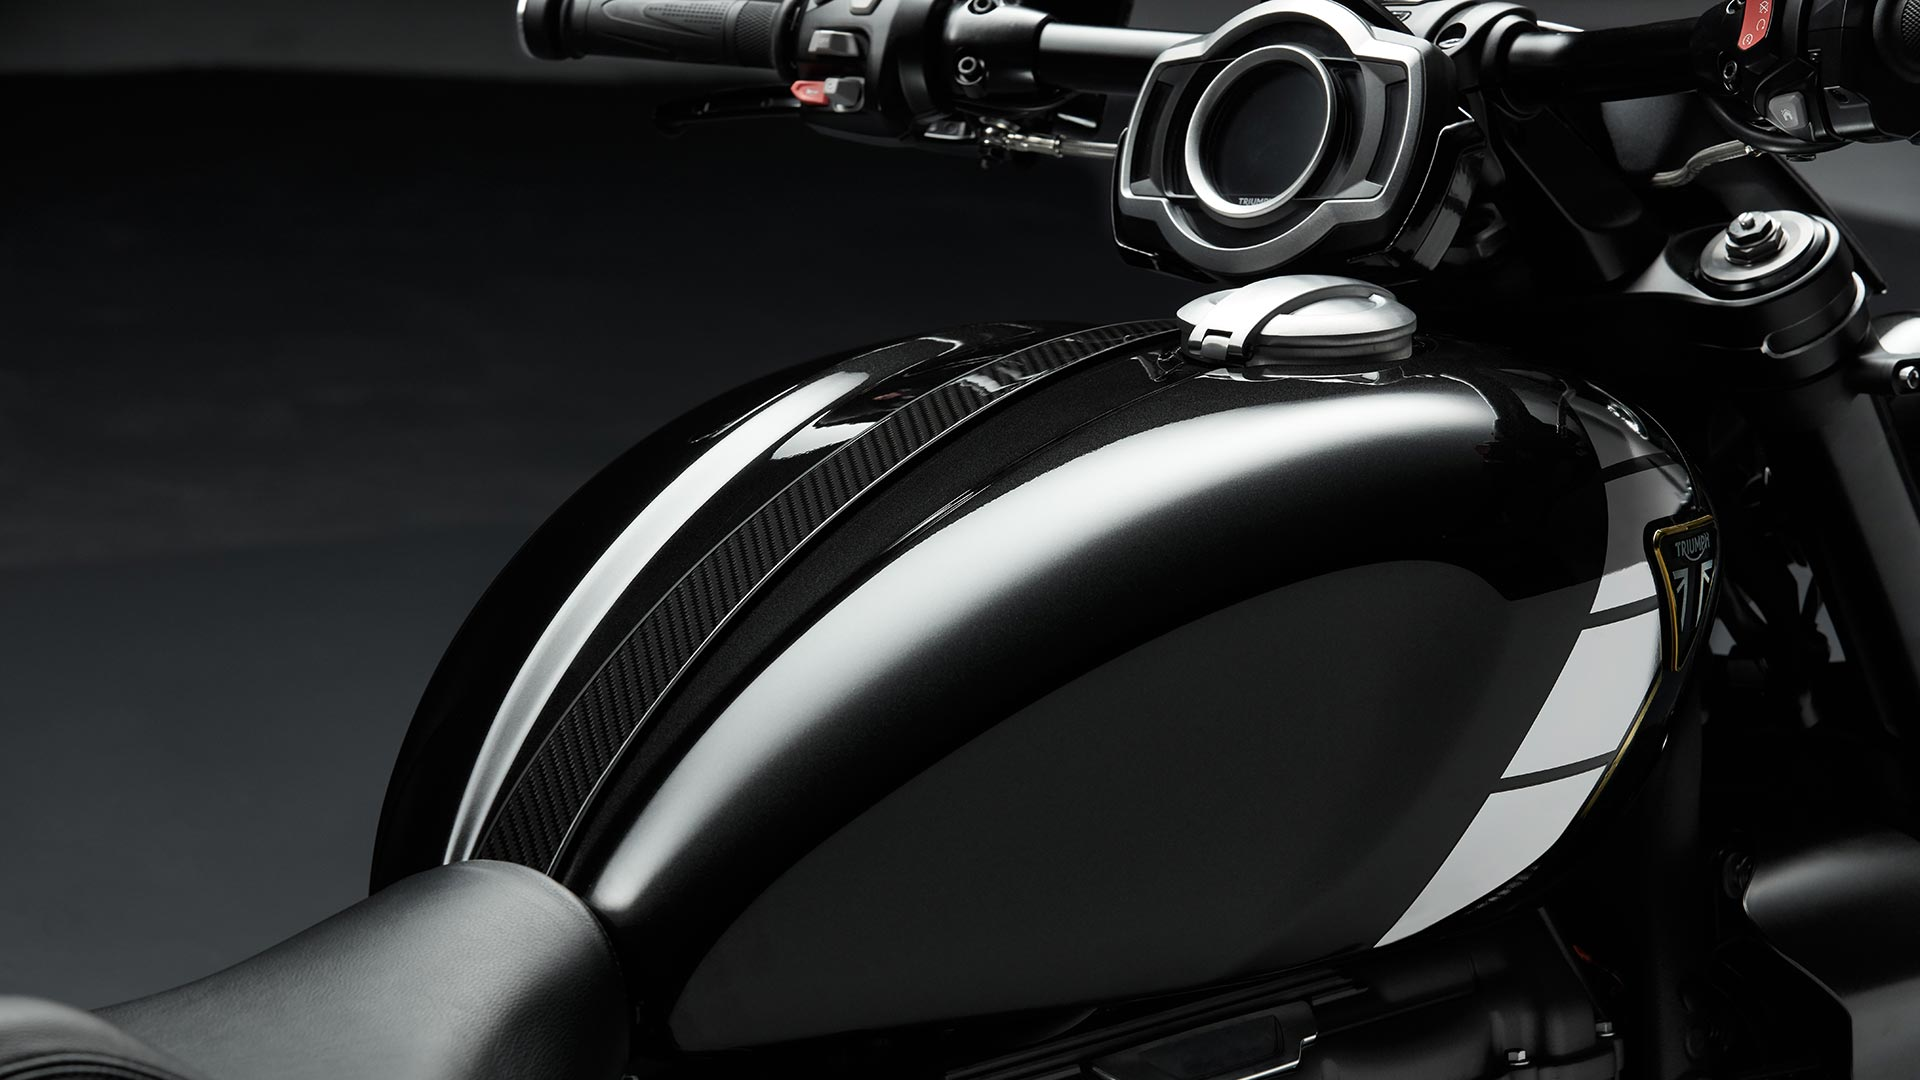 Triumph Rocket 3 TFC fuel tank with premium paint finish